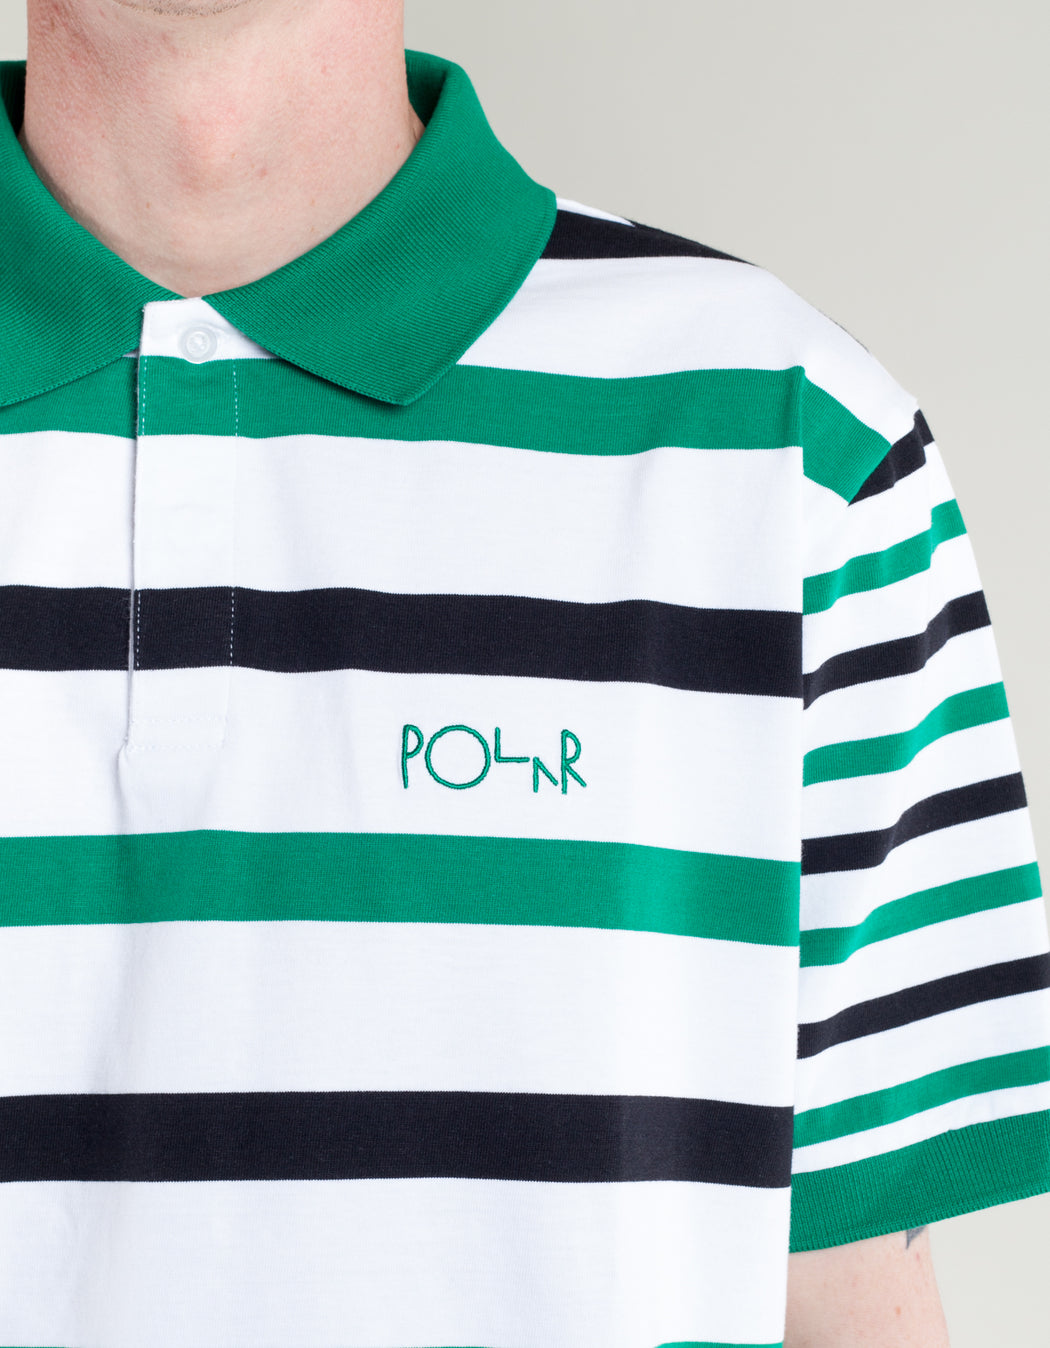 Polar Halls Rugby Polo White Green Black